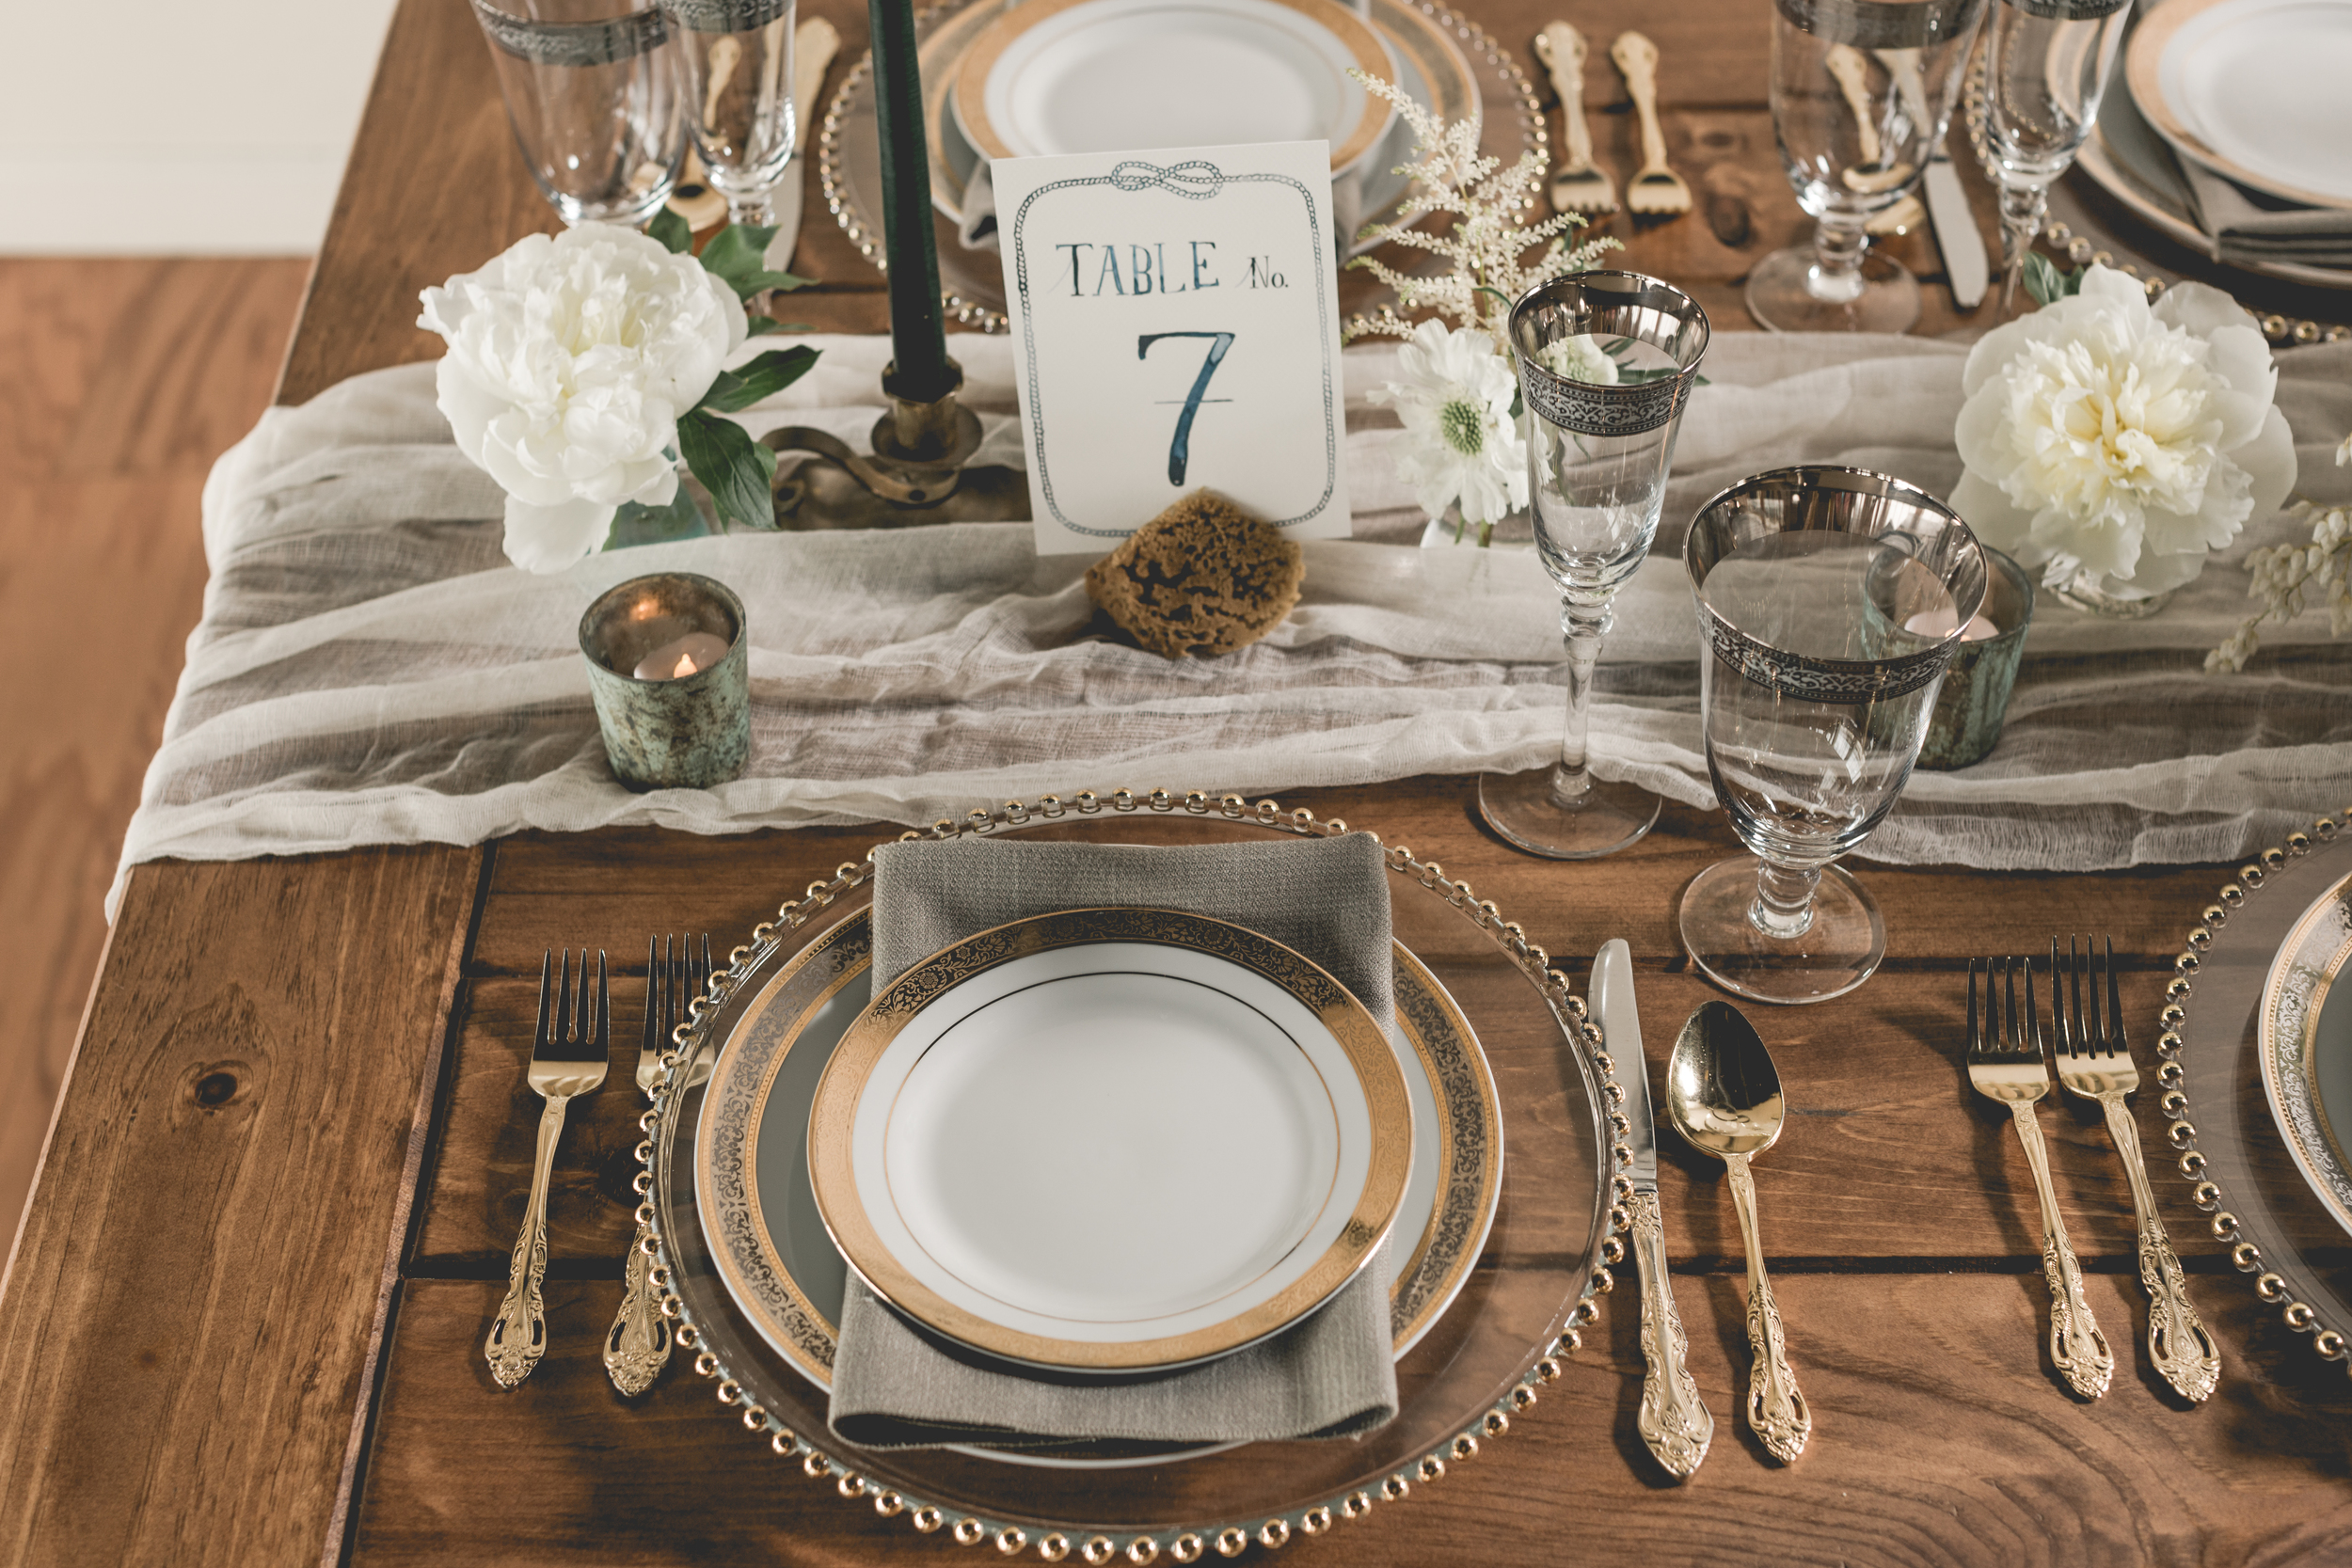 Whaling_Museum_Styled_Shoot_guesttable_4-19-16-23.jpg